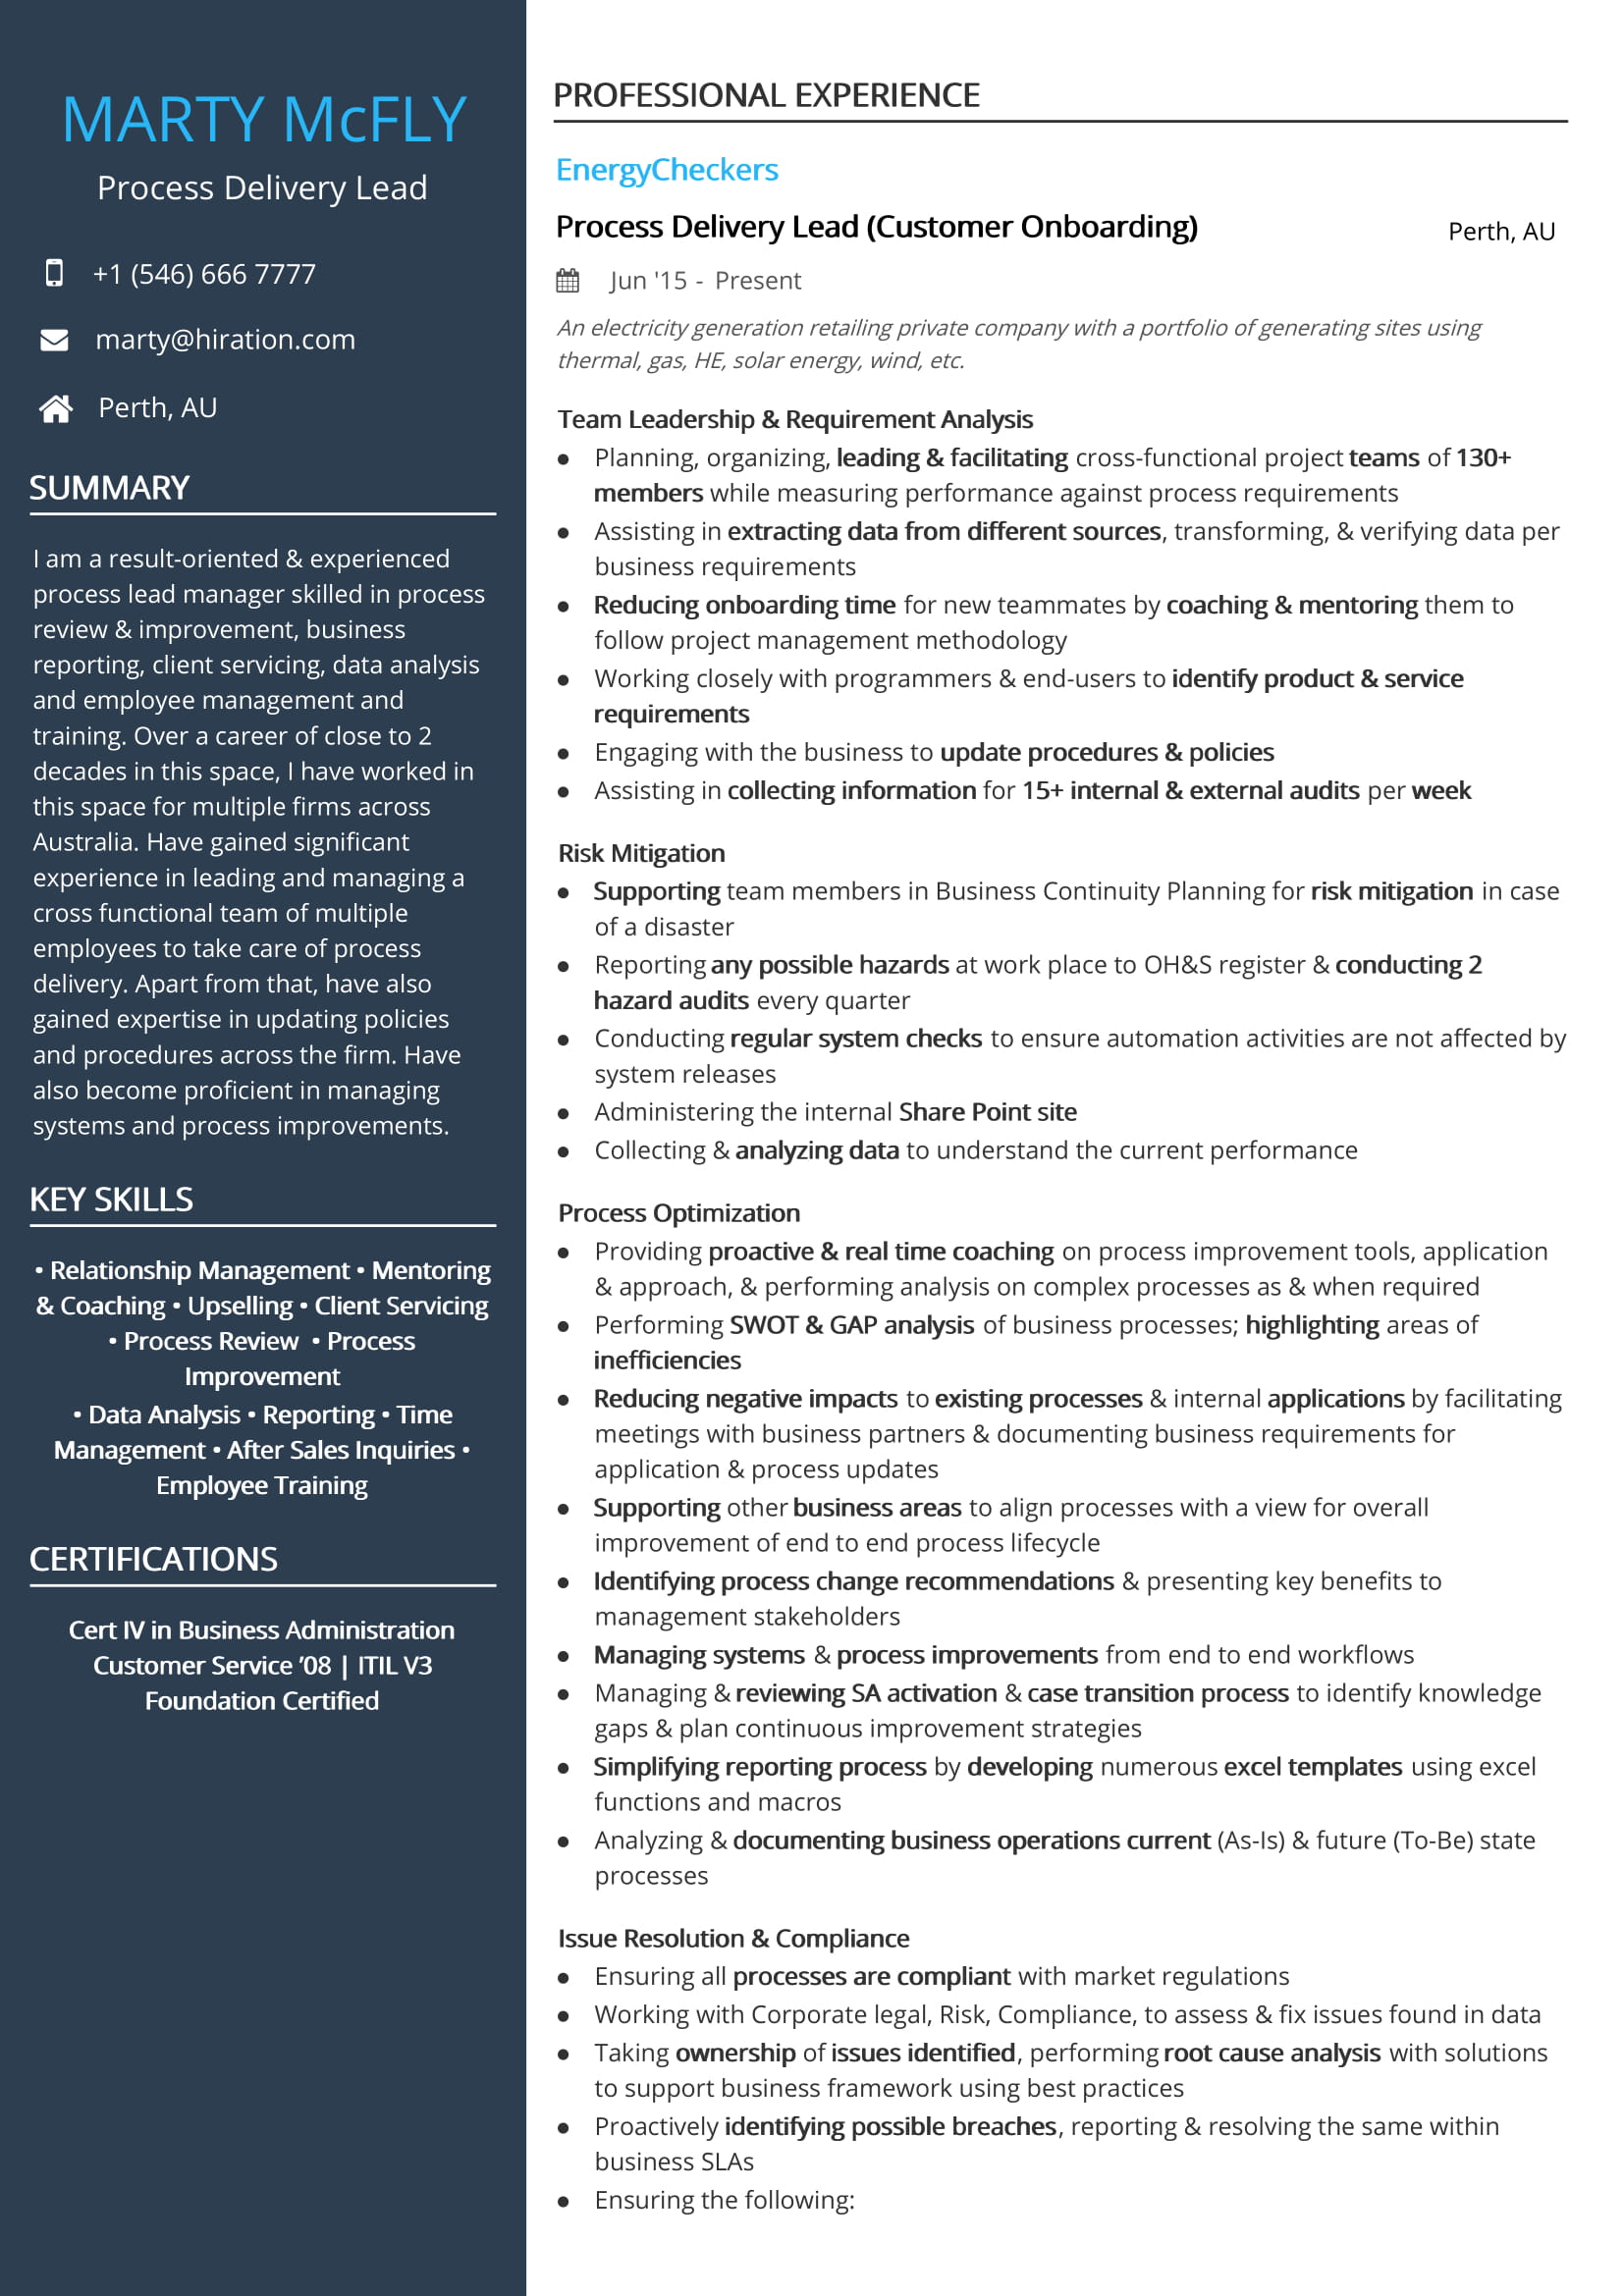 Process Delivery Lead Resume Sample